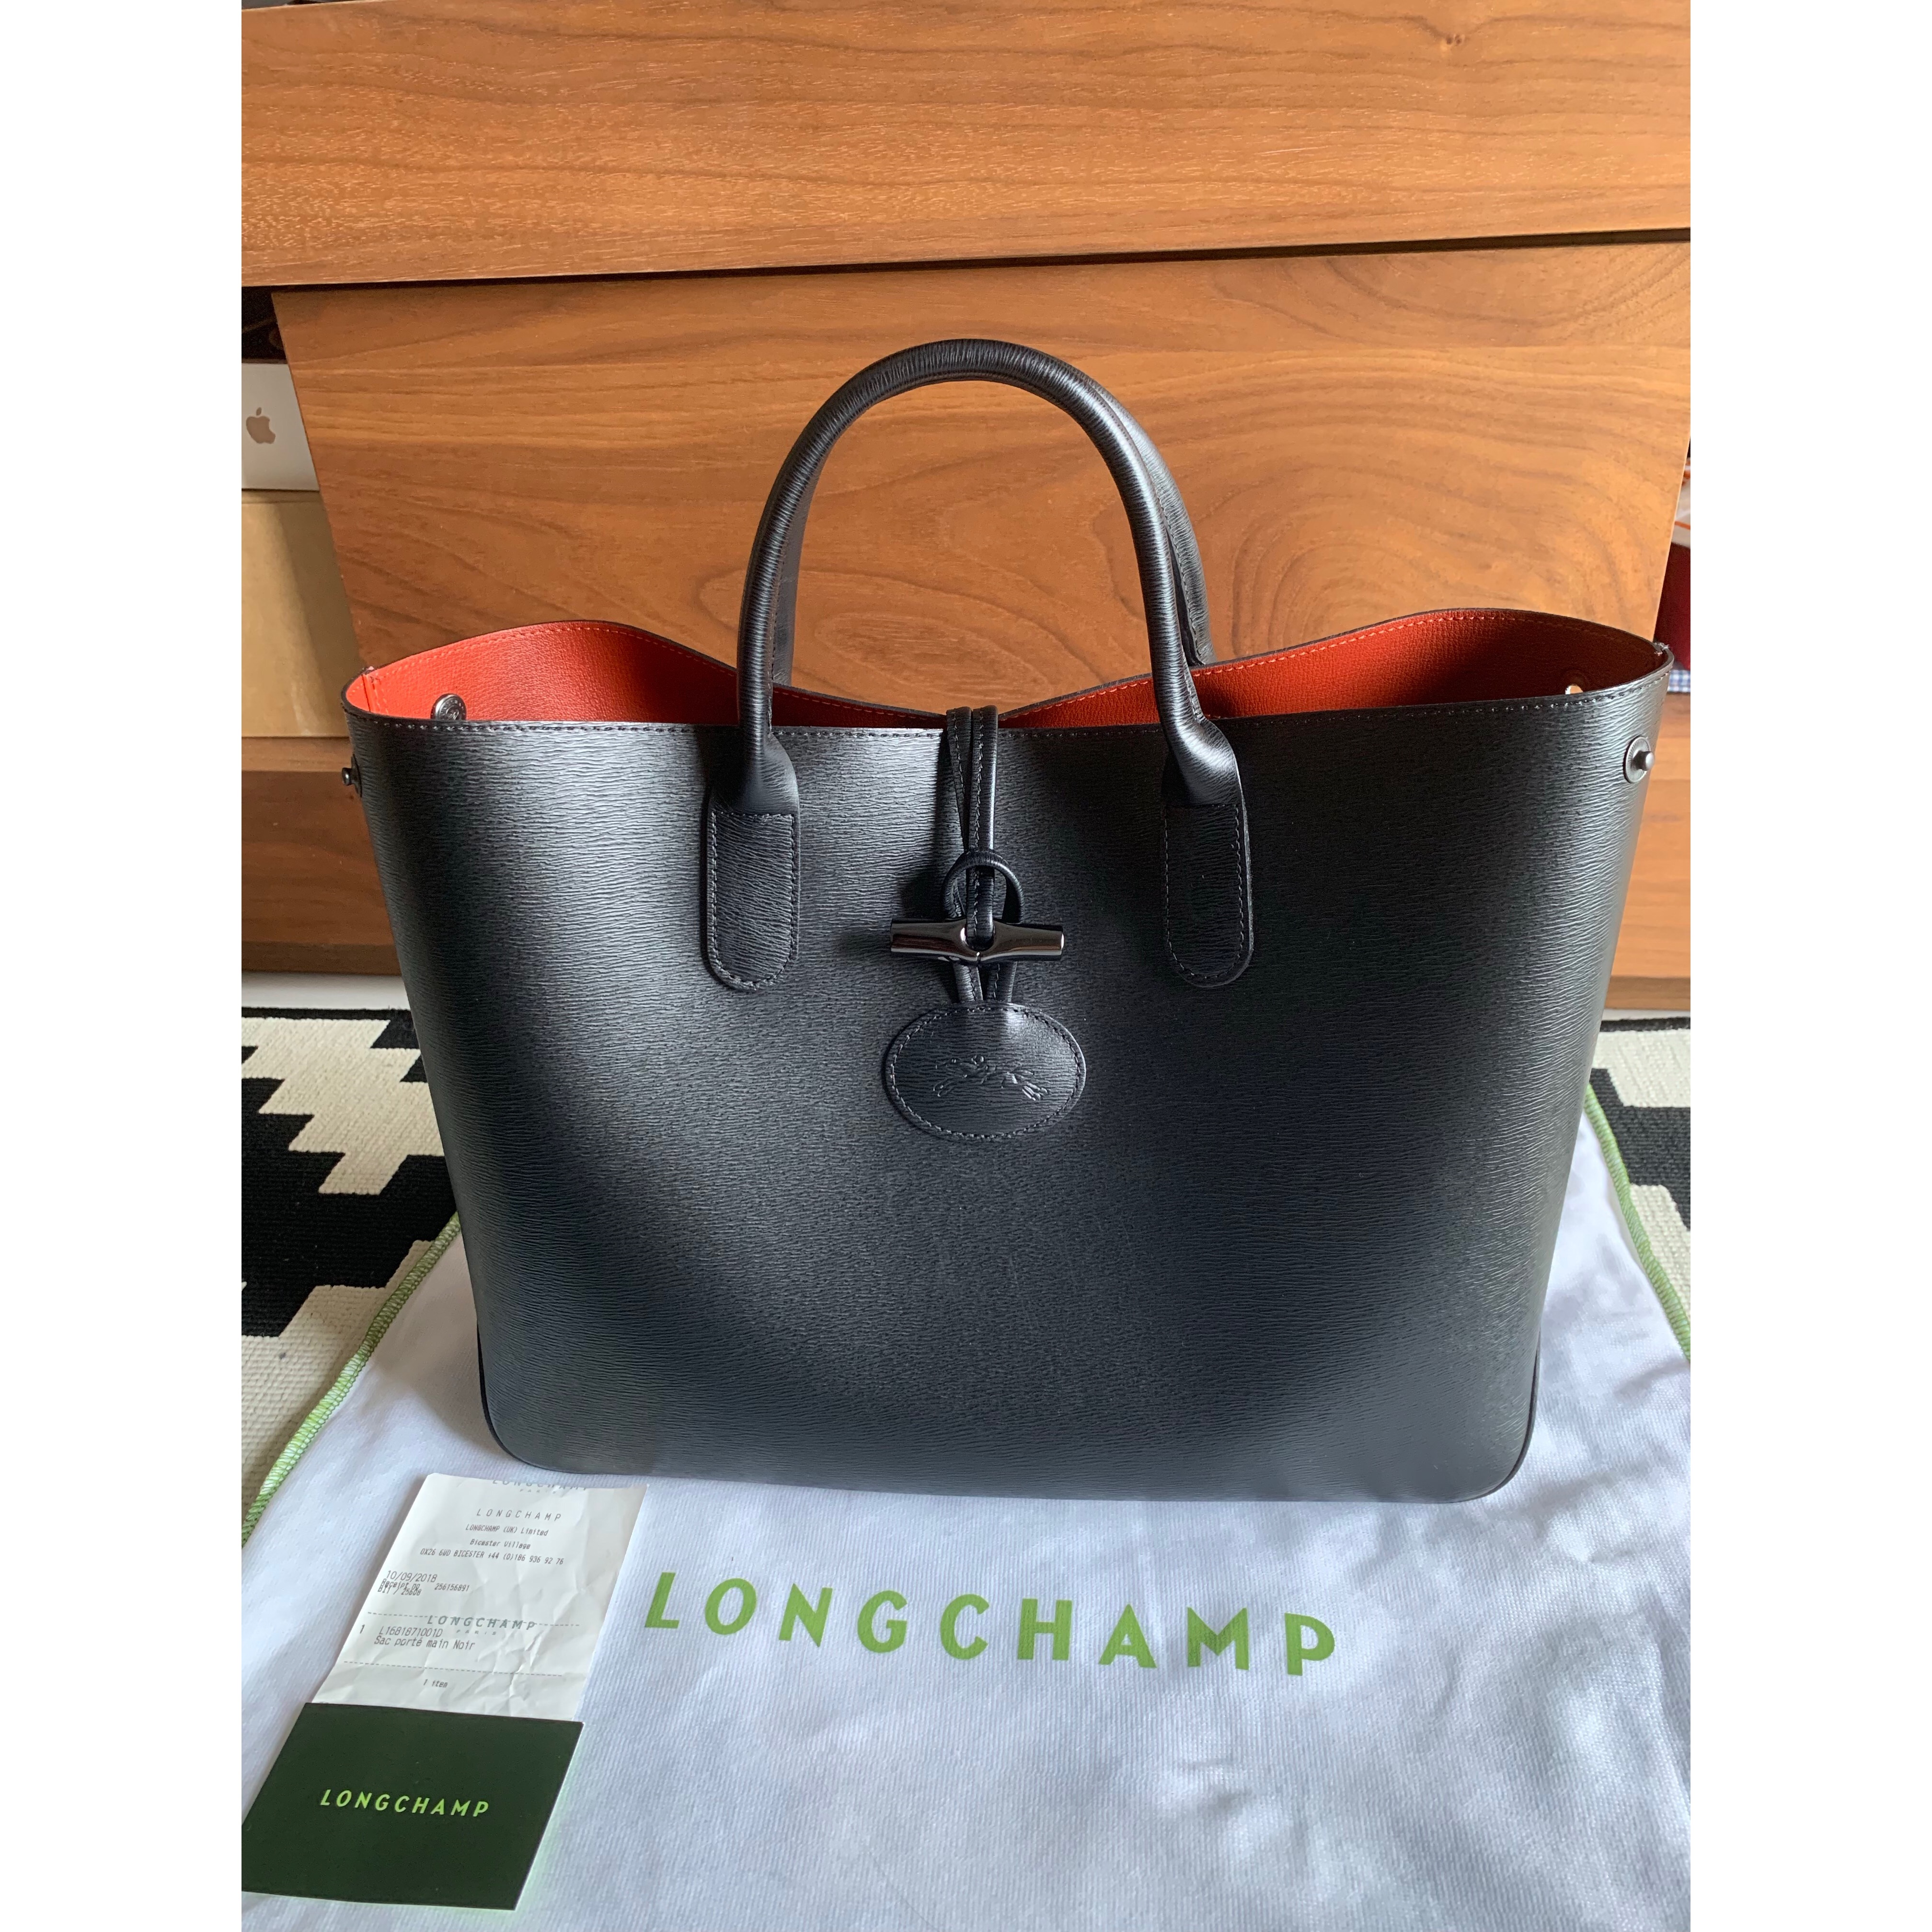 Longchamp Tote short handle Condition   9.9 10 Comes with dust bag and  original receipt from UK. New d88f08ea5c06c